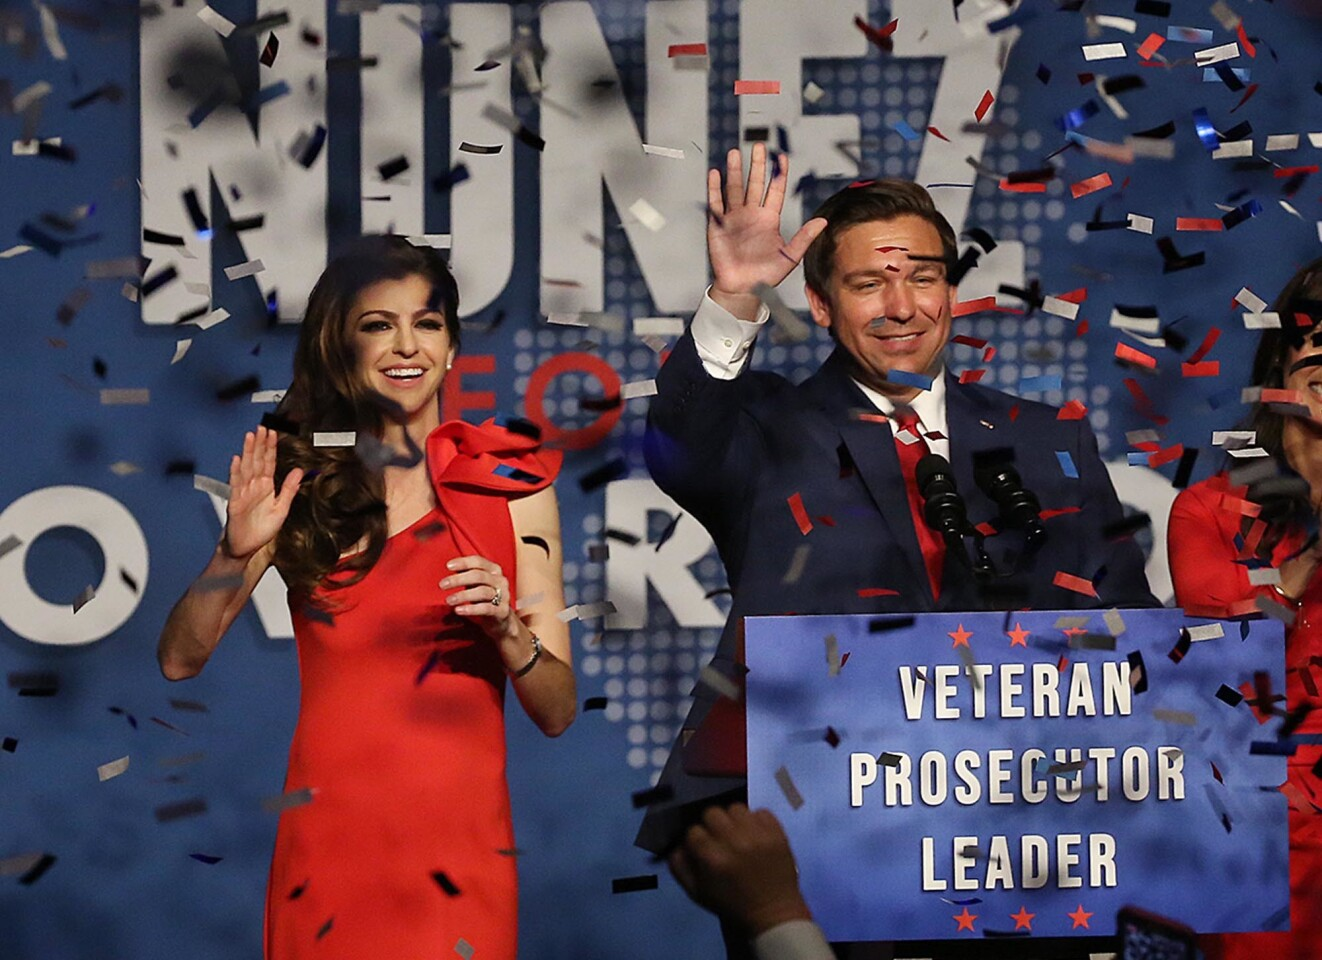 Ron DeSantis and his wife Caey celebrate after winning the Florida Governor's race during DeSantis' party at the Rosen Centre in Orlando on Tuesday, November 6, 2018. (Stephen M. Dowell/Orlando Sentinel)